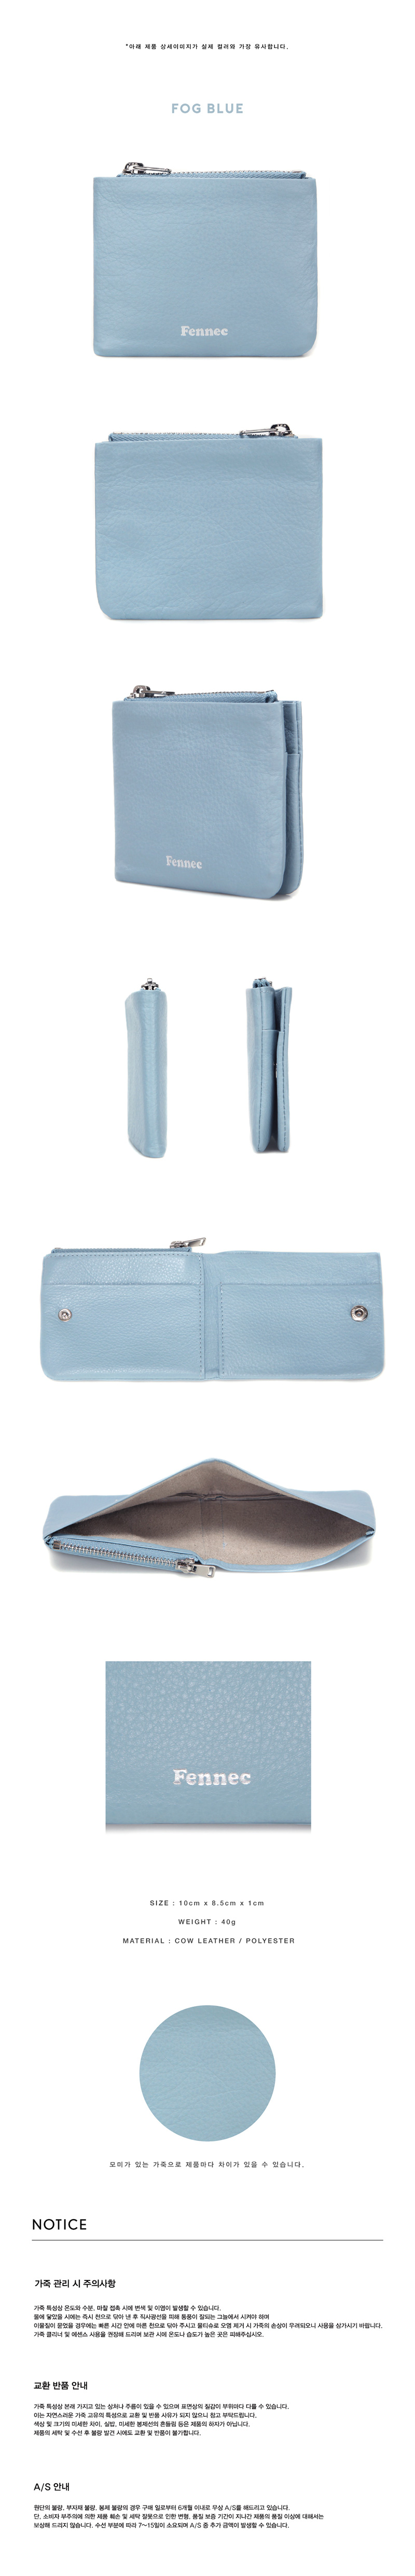 soft-fold-wallet-fogblue.jpg